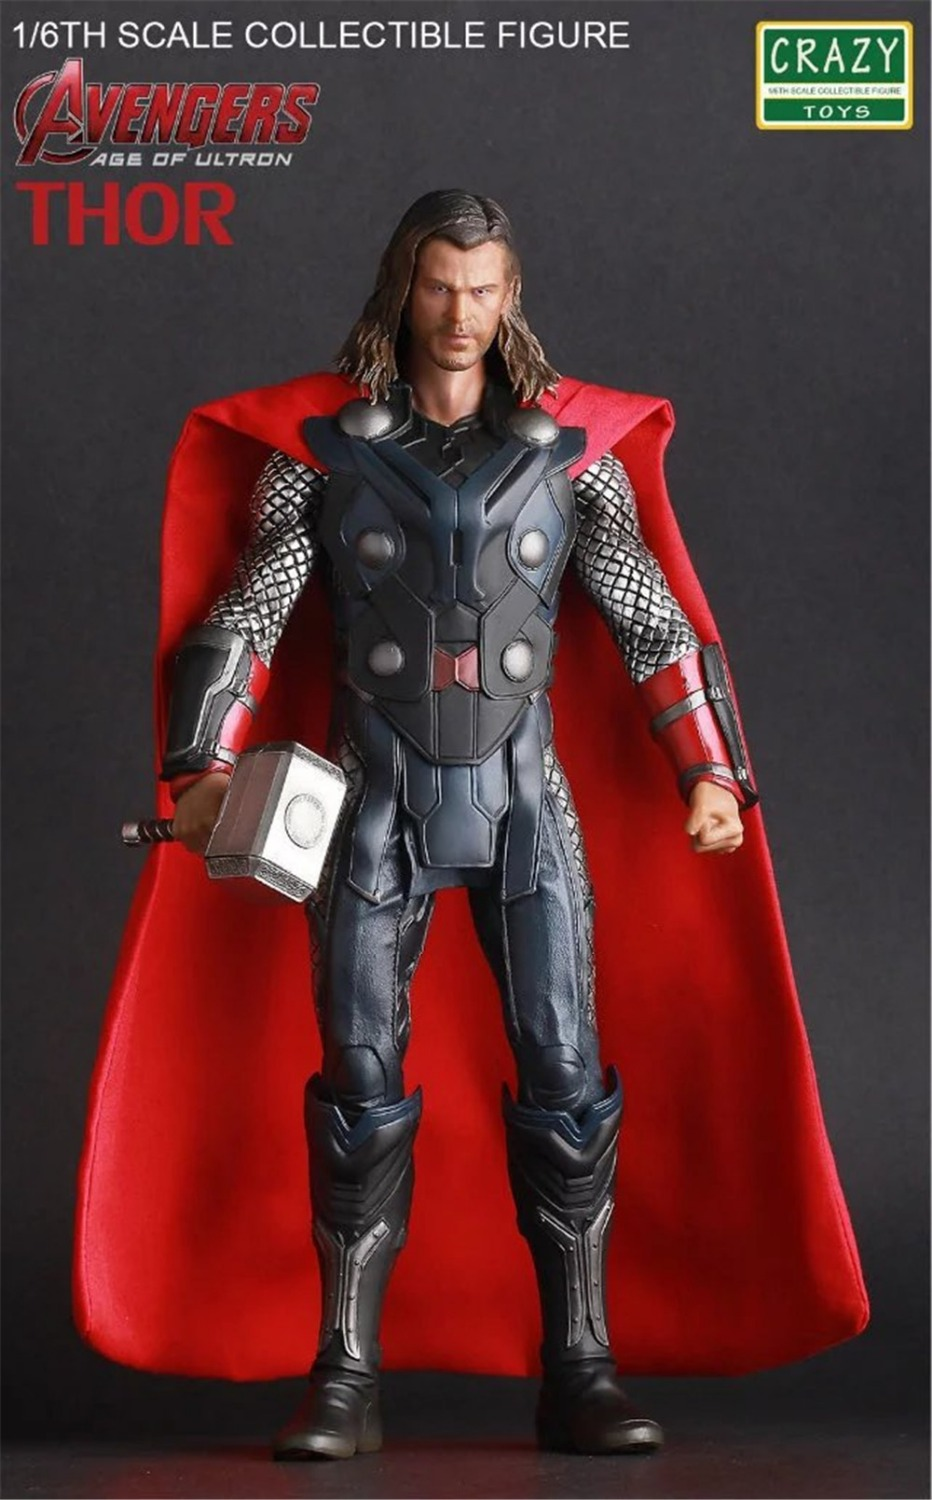 ФОТО Crazy Toys The Avengers Thor Action Figure toys Collectible Model PVC kid Toy gift 29cm